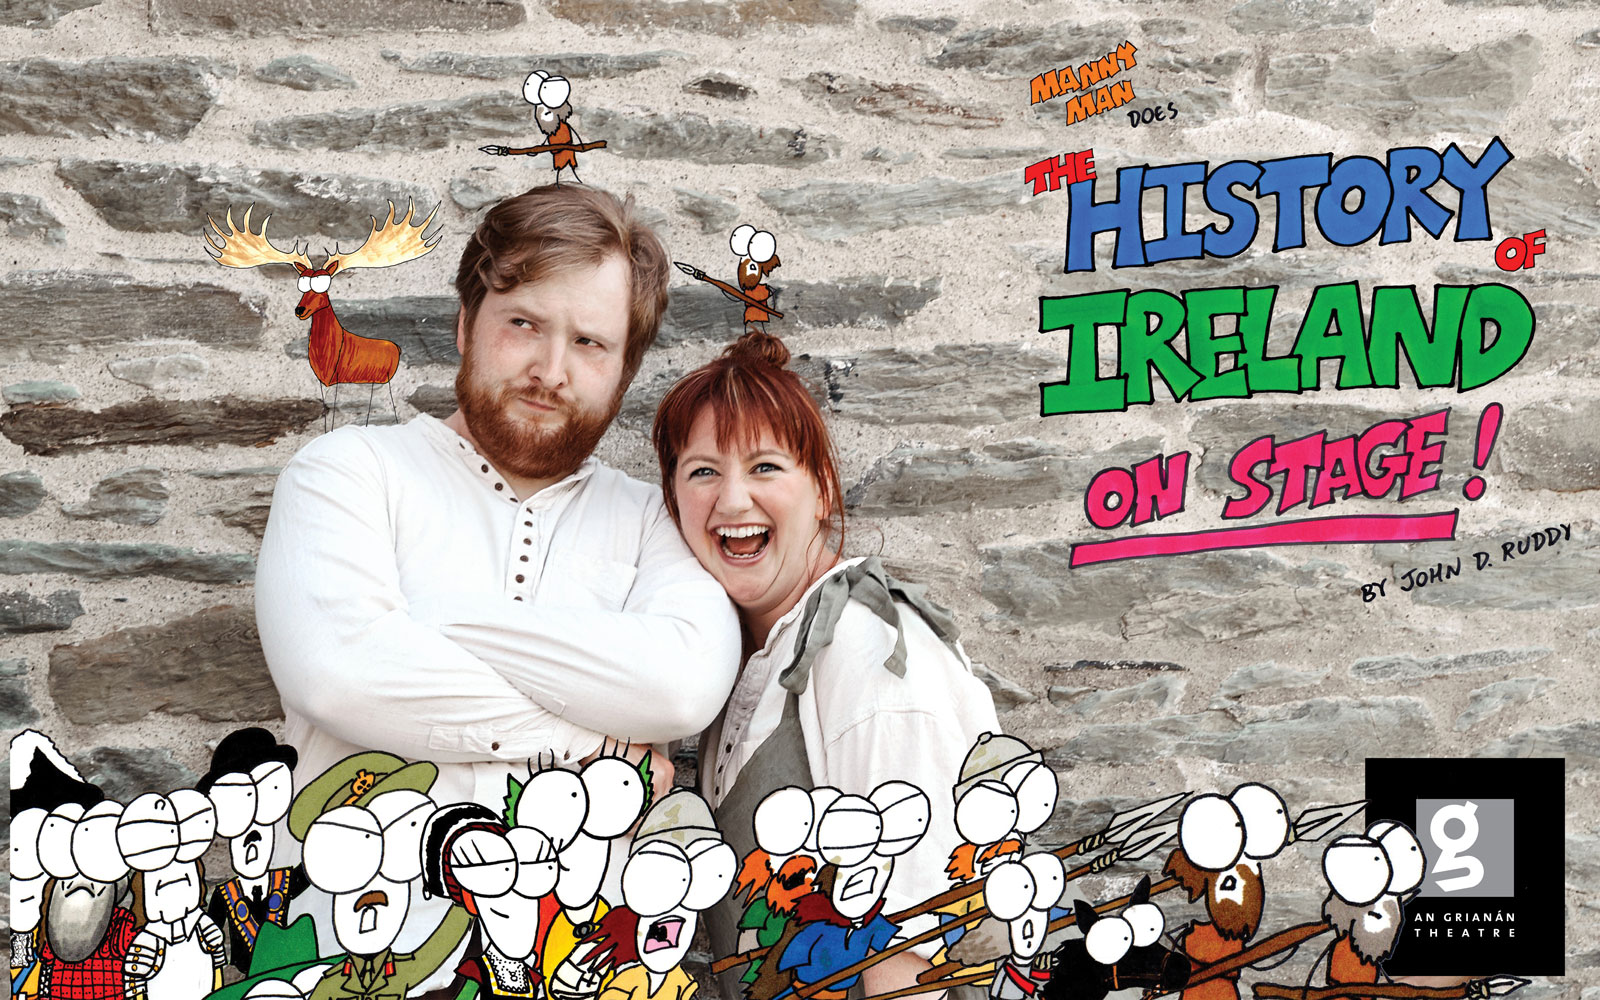 An Grianan Theatre presents John D Ruddy & Louise Conaghan in Manny Man Does the History of Ireland.